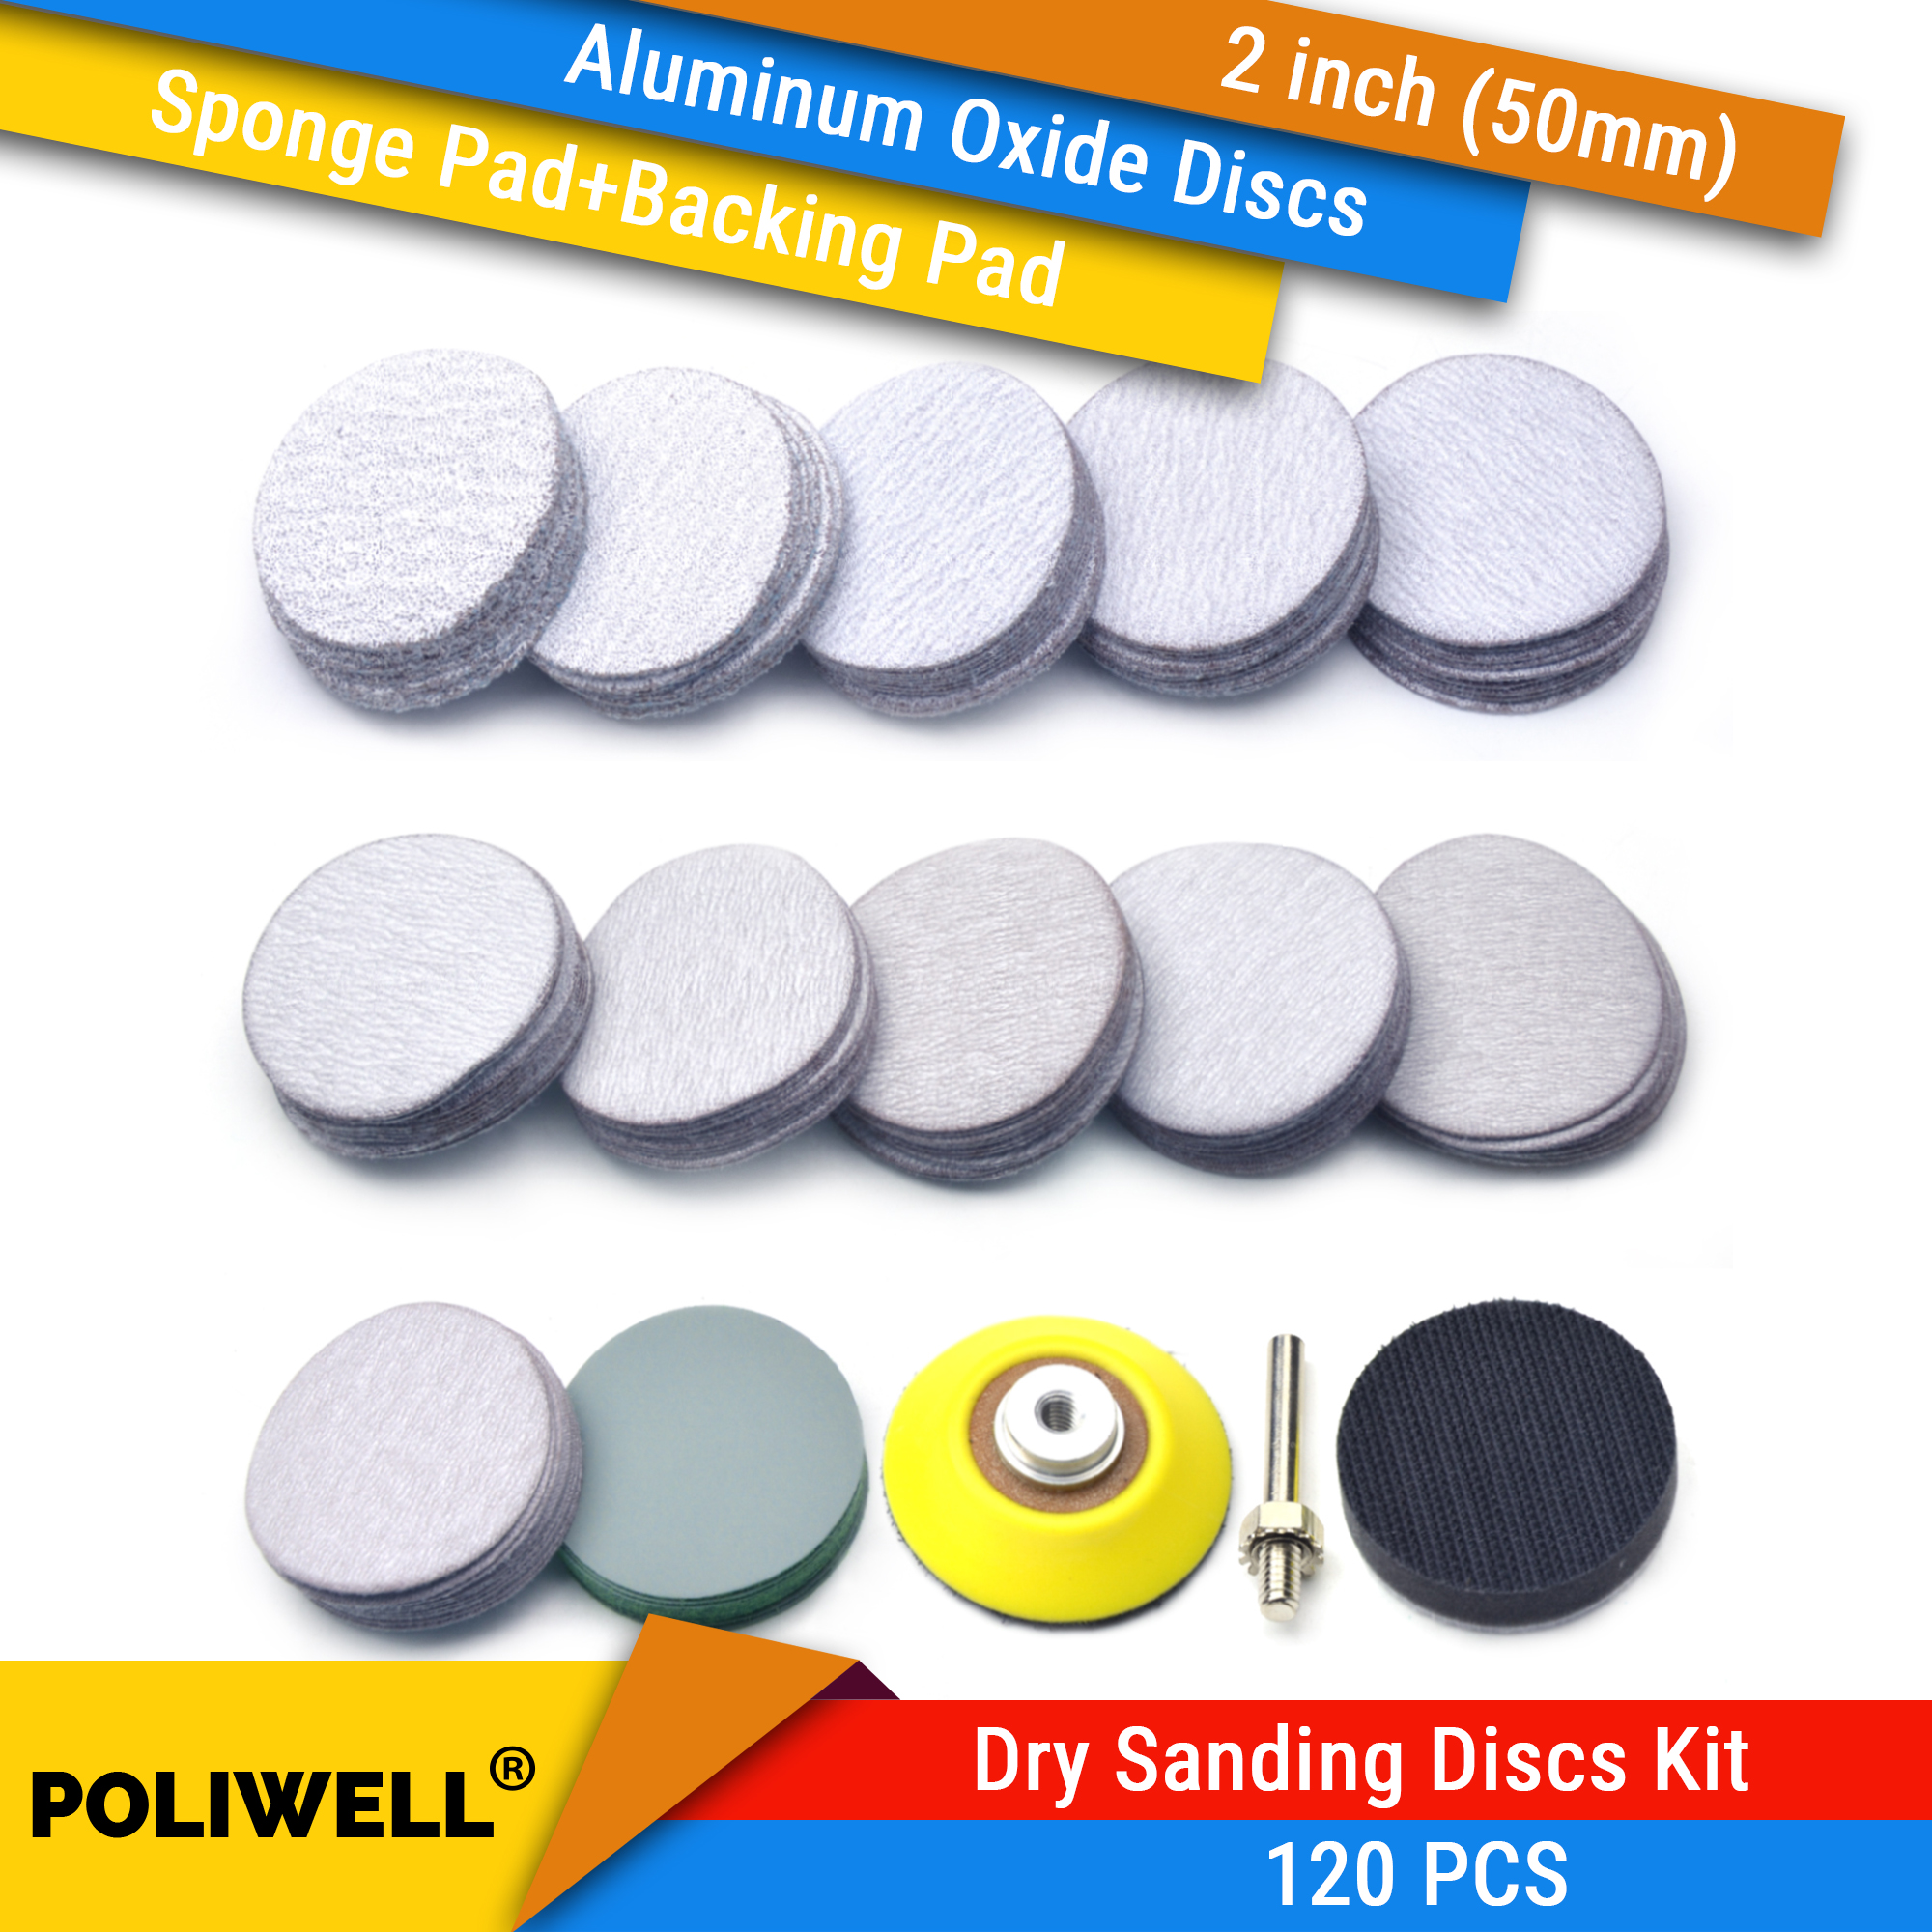 120PCS 2 Inch Dry Sanding Discs Kit For Drill Grinder Rotary Tools H&L Sandpaper 60-3000 Grit + 1/4 Inch Backer Pad +Sponge Pad